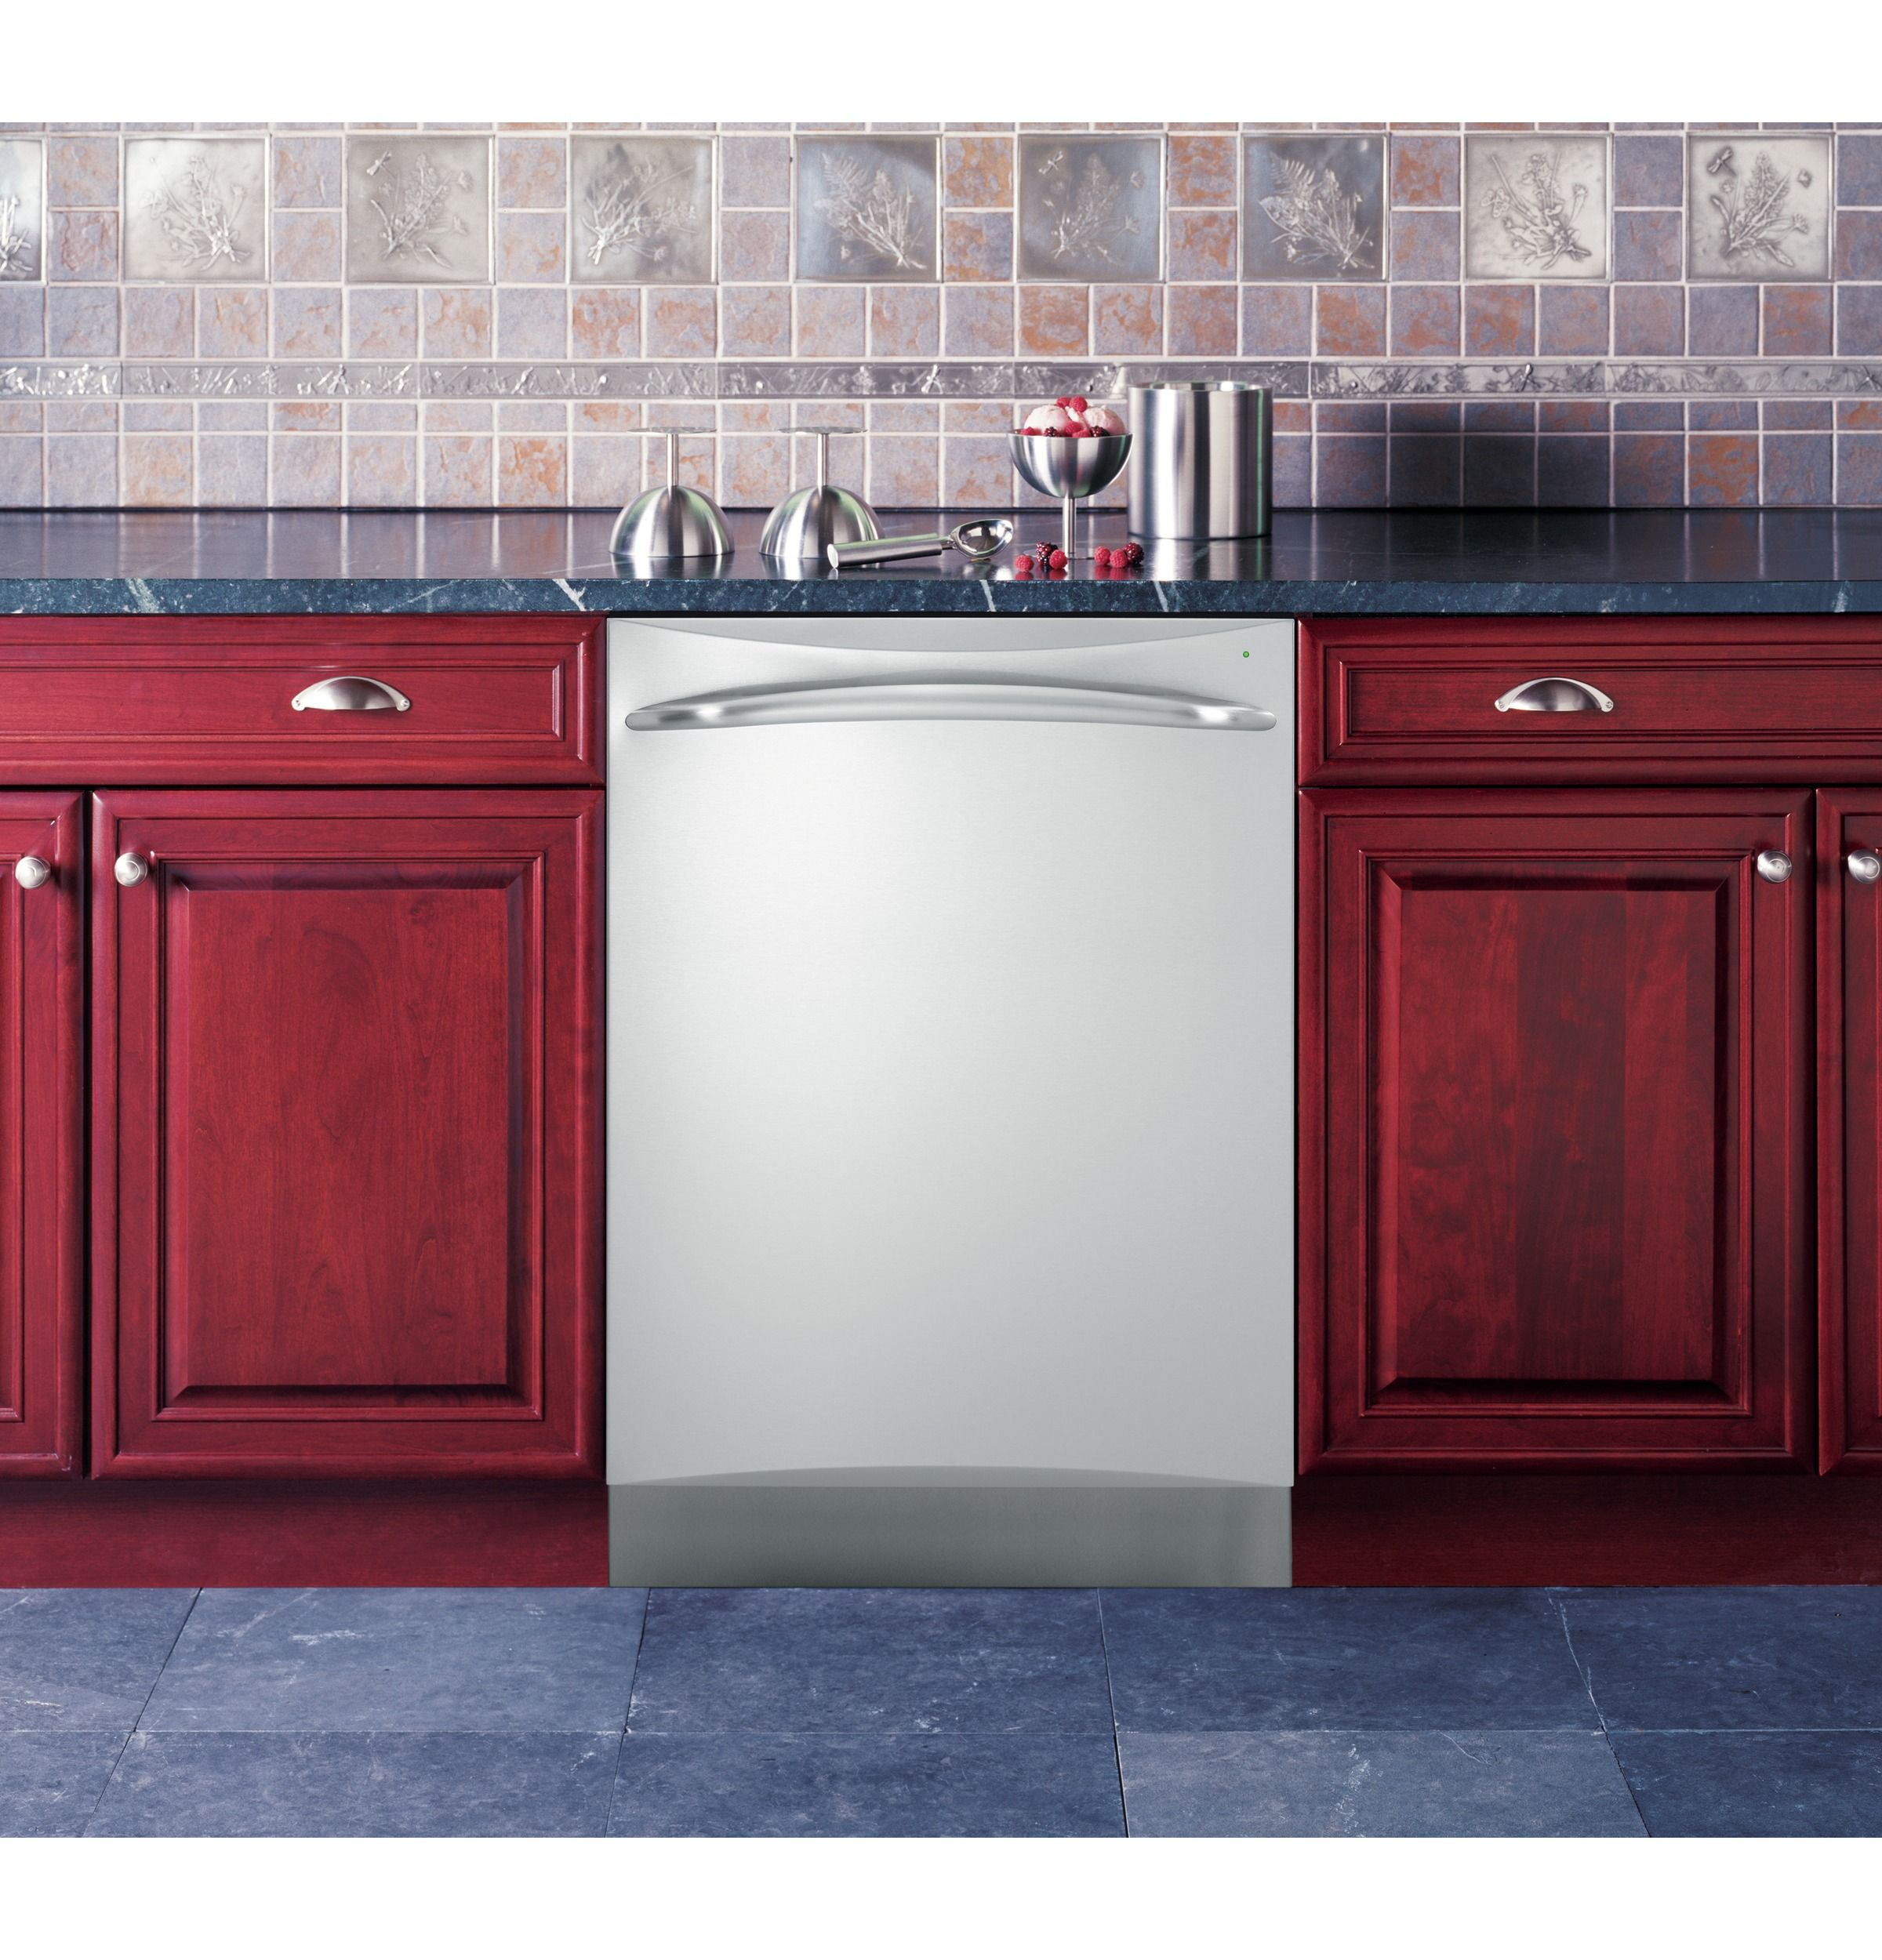 this before a solutions one have on had toe base brand they i cabinet snap was not plastic leg shaped and feature grandbaby every levelers drawer showroom in with new u cabinotch dishwasher innovative kick img seen single korea